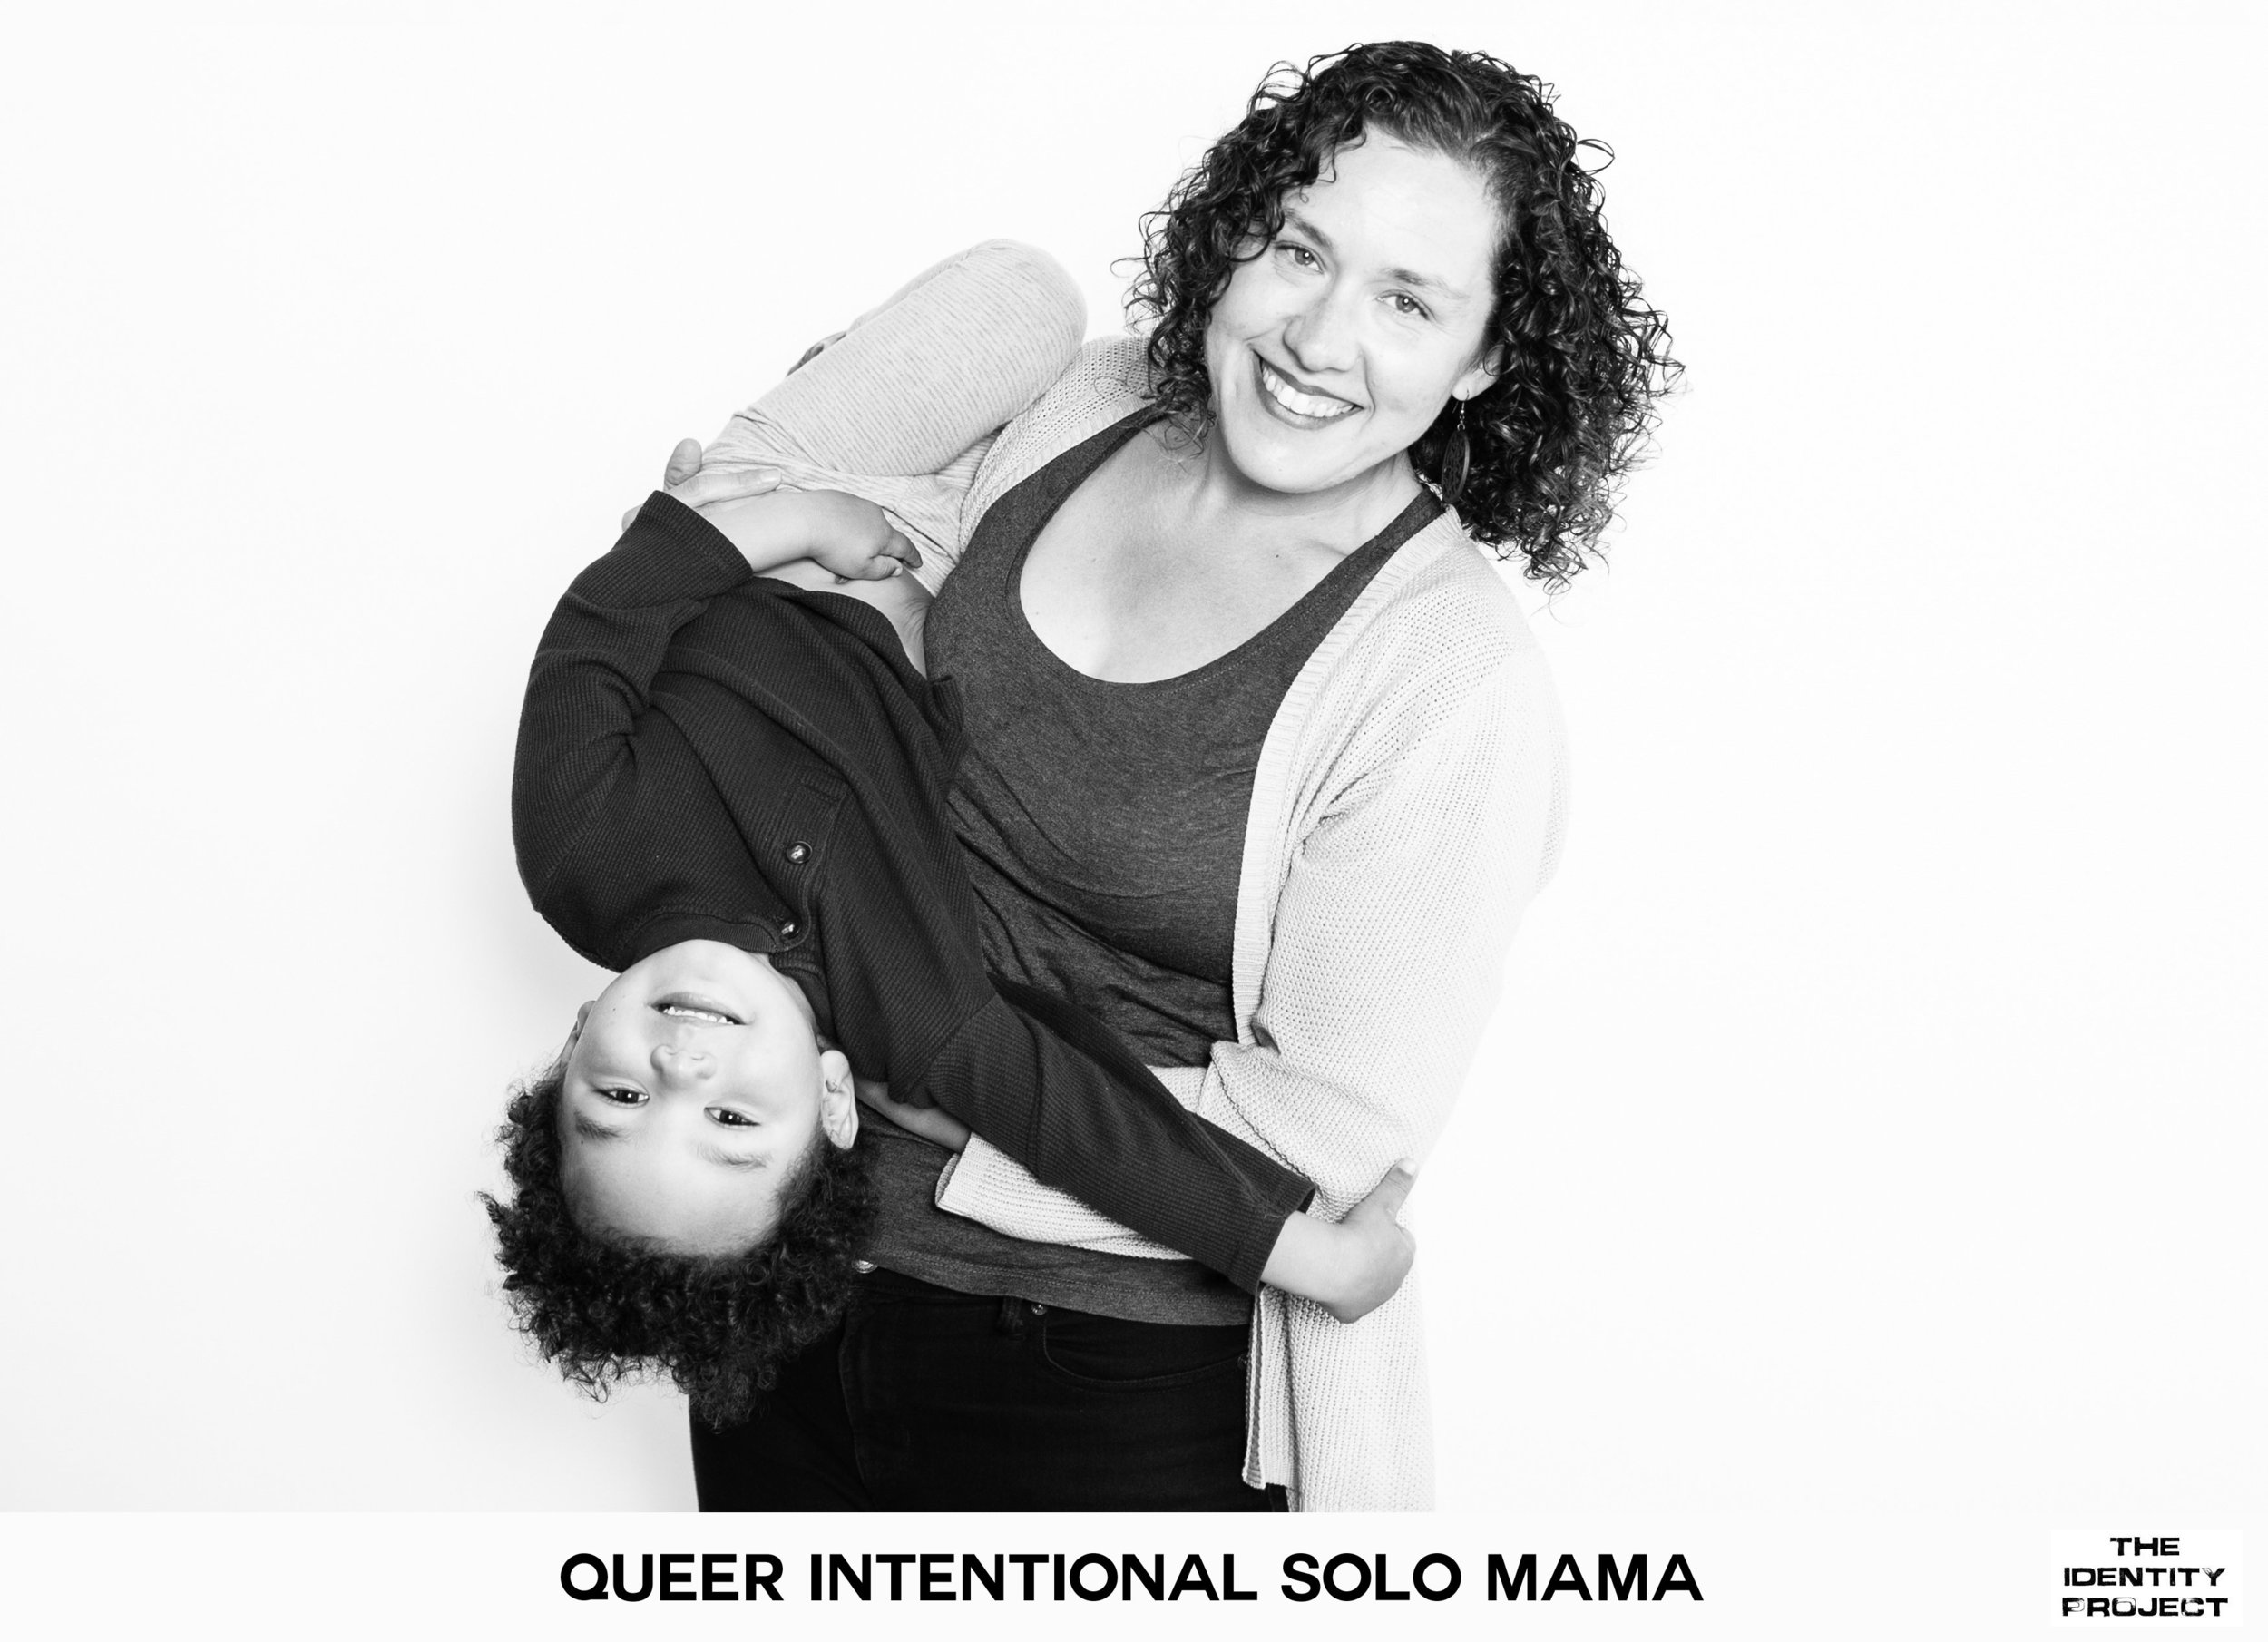 Queer_Intentional_Solo_Mama_Framed.jpg